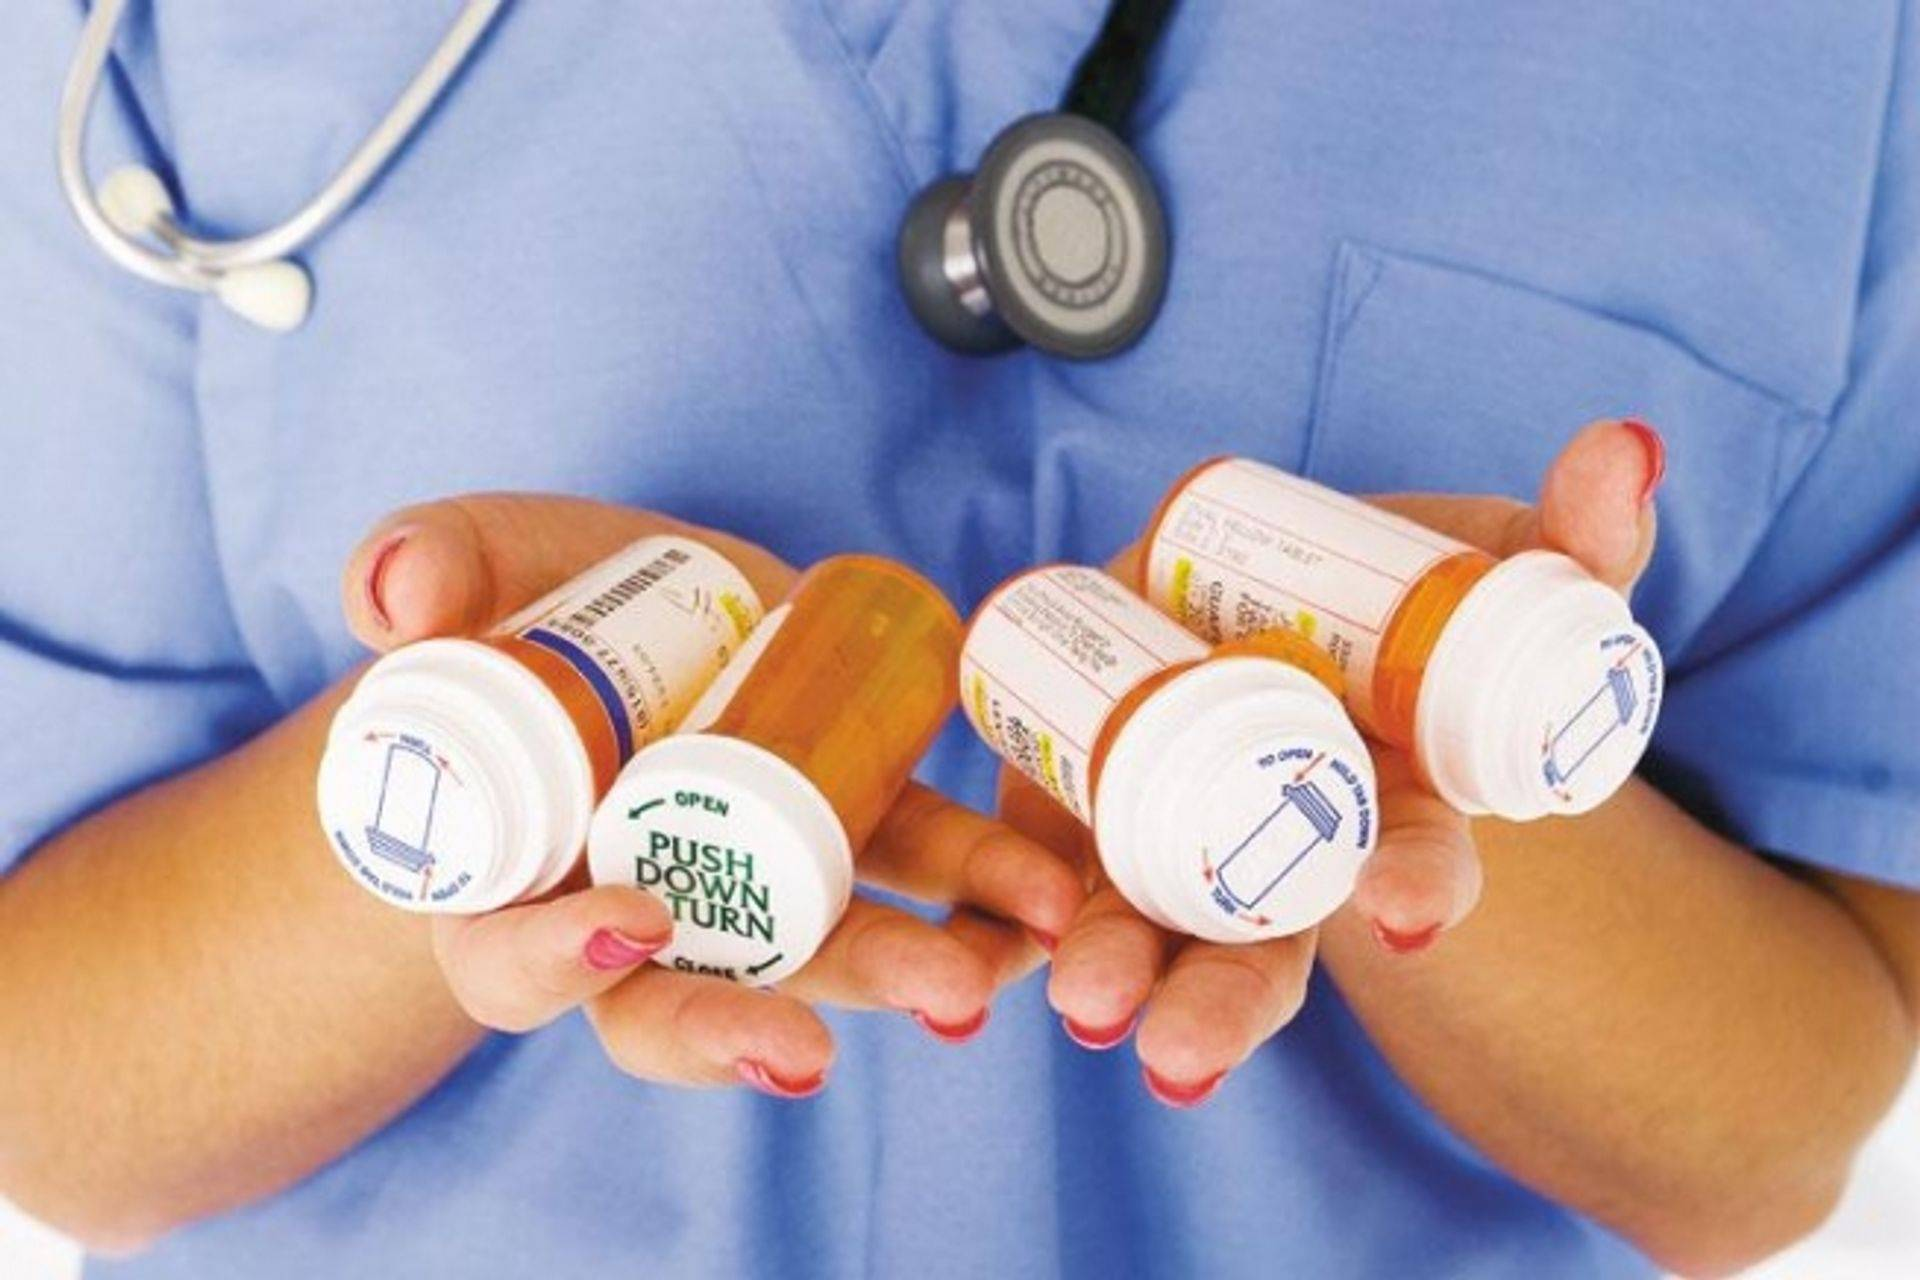 Buy Pain and other Medication/drugs online